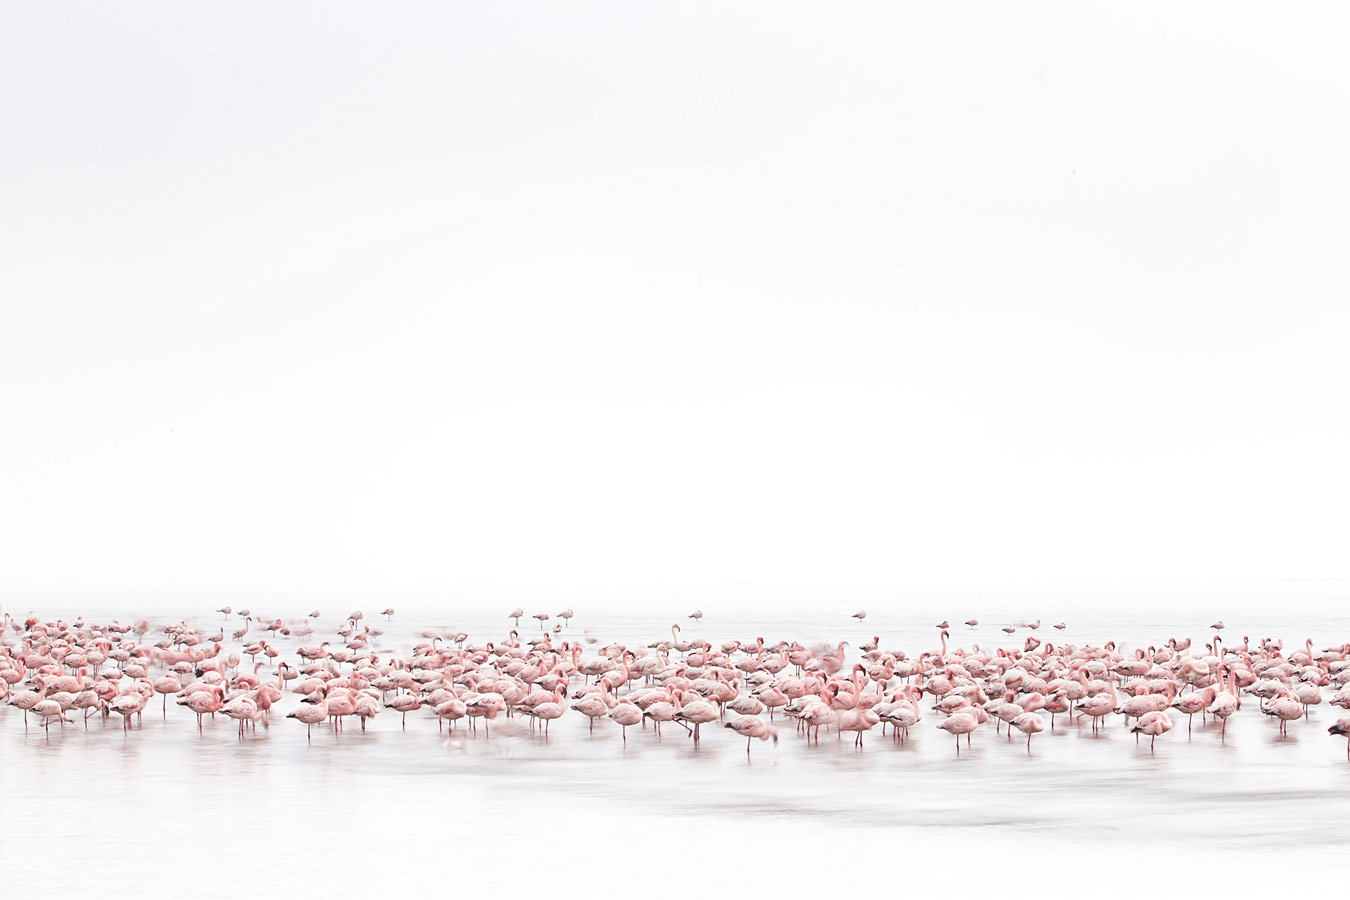 Alessandra Meniconzi , Switzerland, Winner, Open Competition, Wildlife, 2017 Sony World Photography Awards